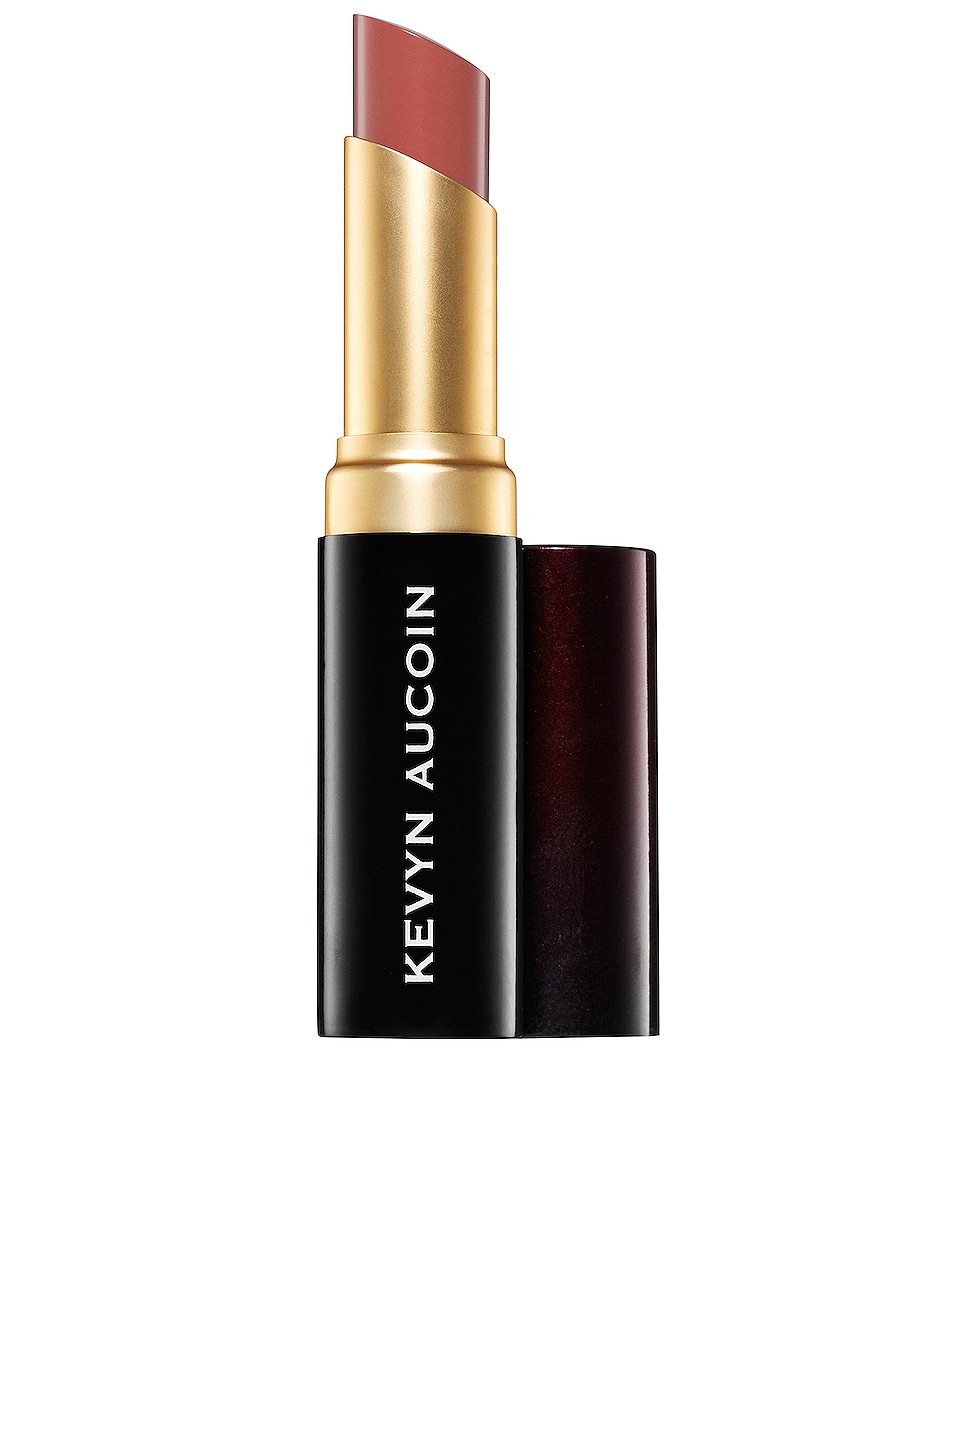 Kevyn Aucoin The Matte Lip Color in Uninterrupted